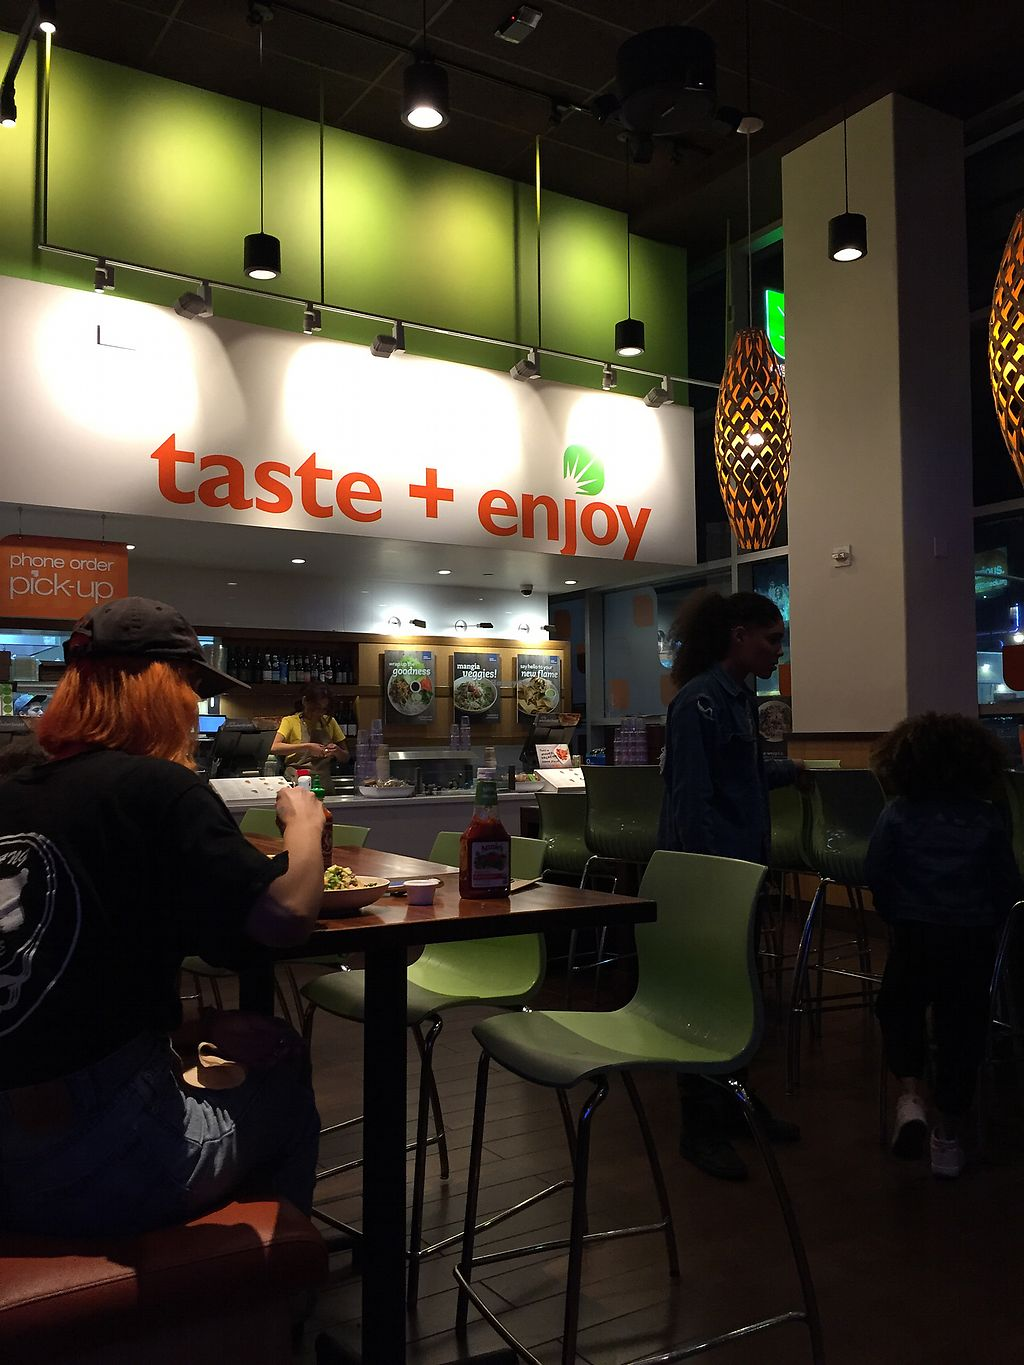 "Photo of Veggie Grill  by <a href=""/members/profile/RicardoShiroma"">RicardoShiroma</a> <br/>Nice ambient  <br/> March 6, 2018  - <a href='/contact/abuse/image/35243/367317'>Report</a>"